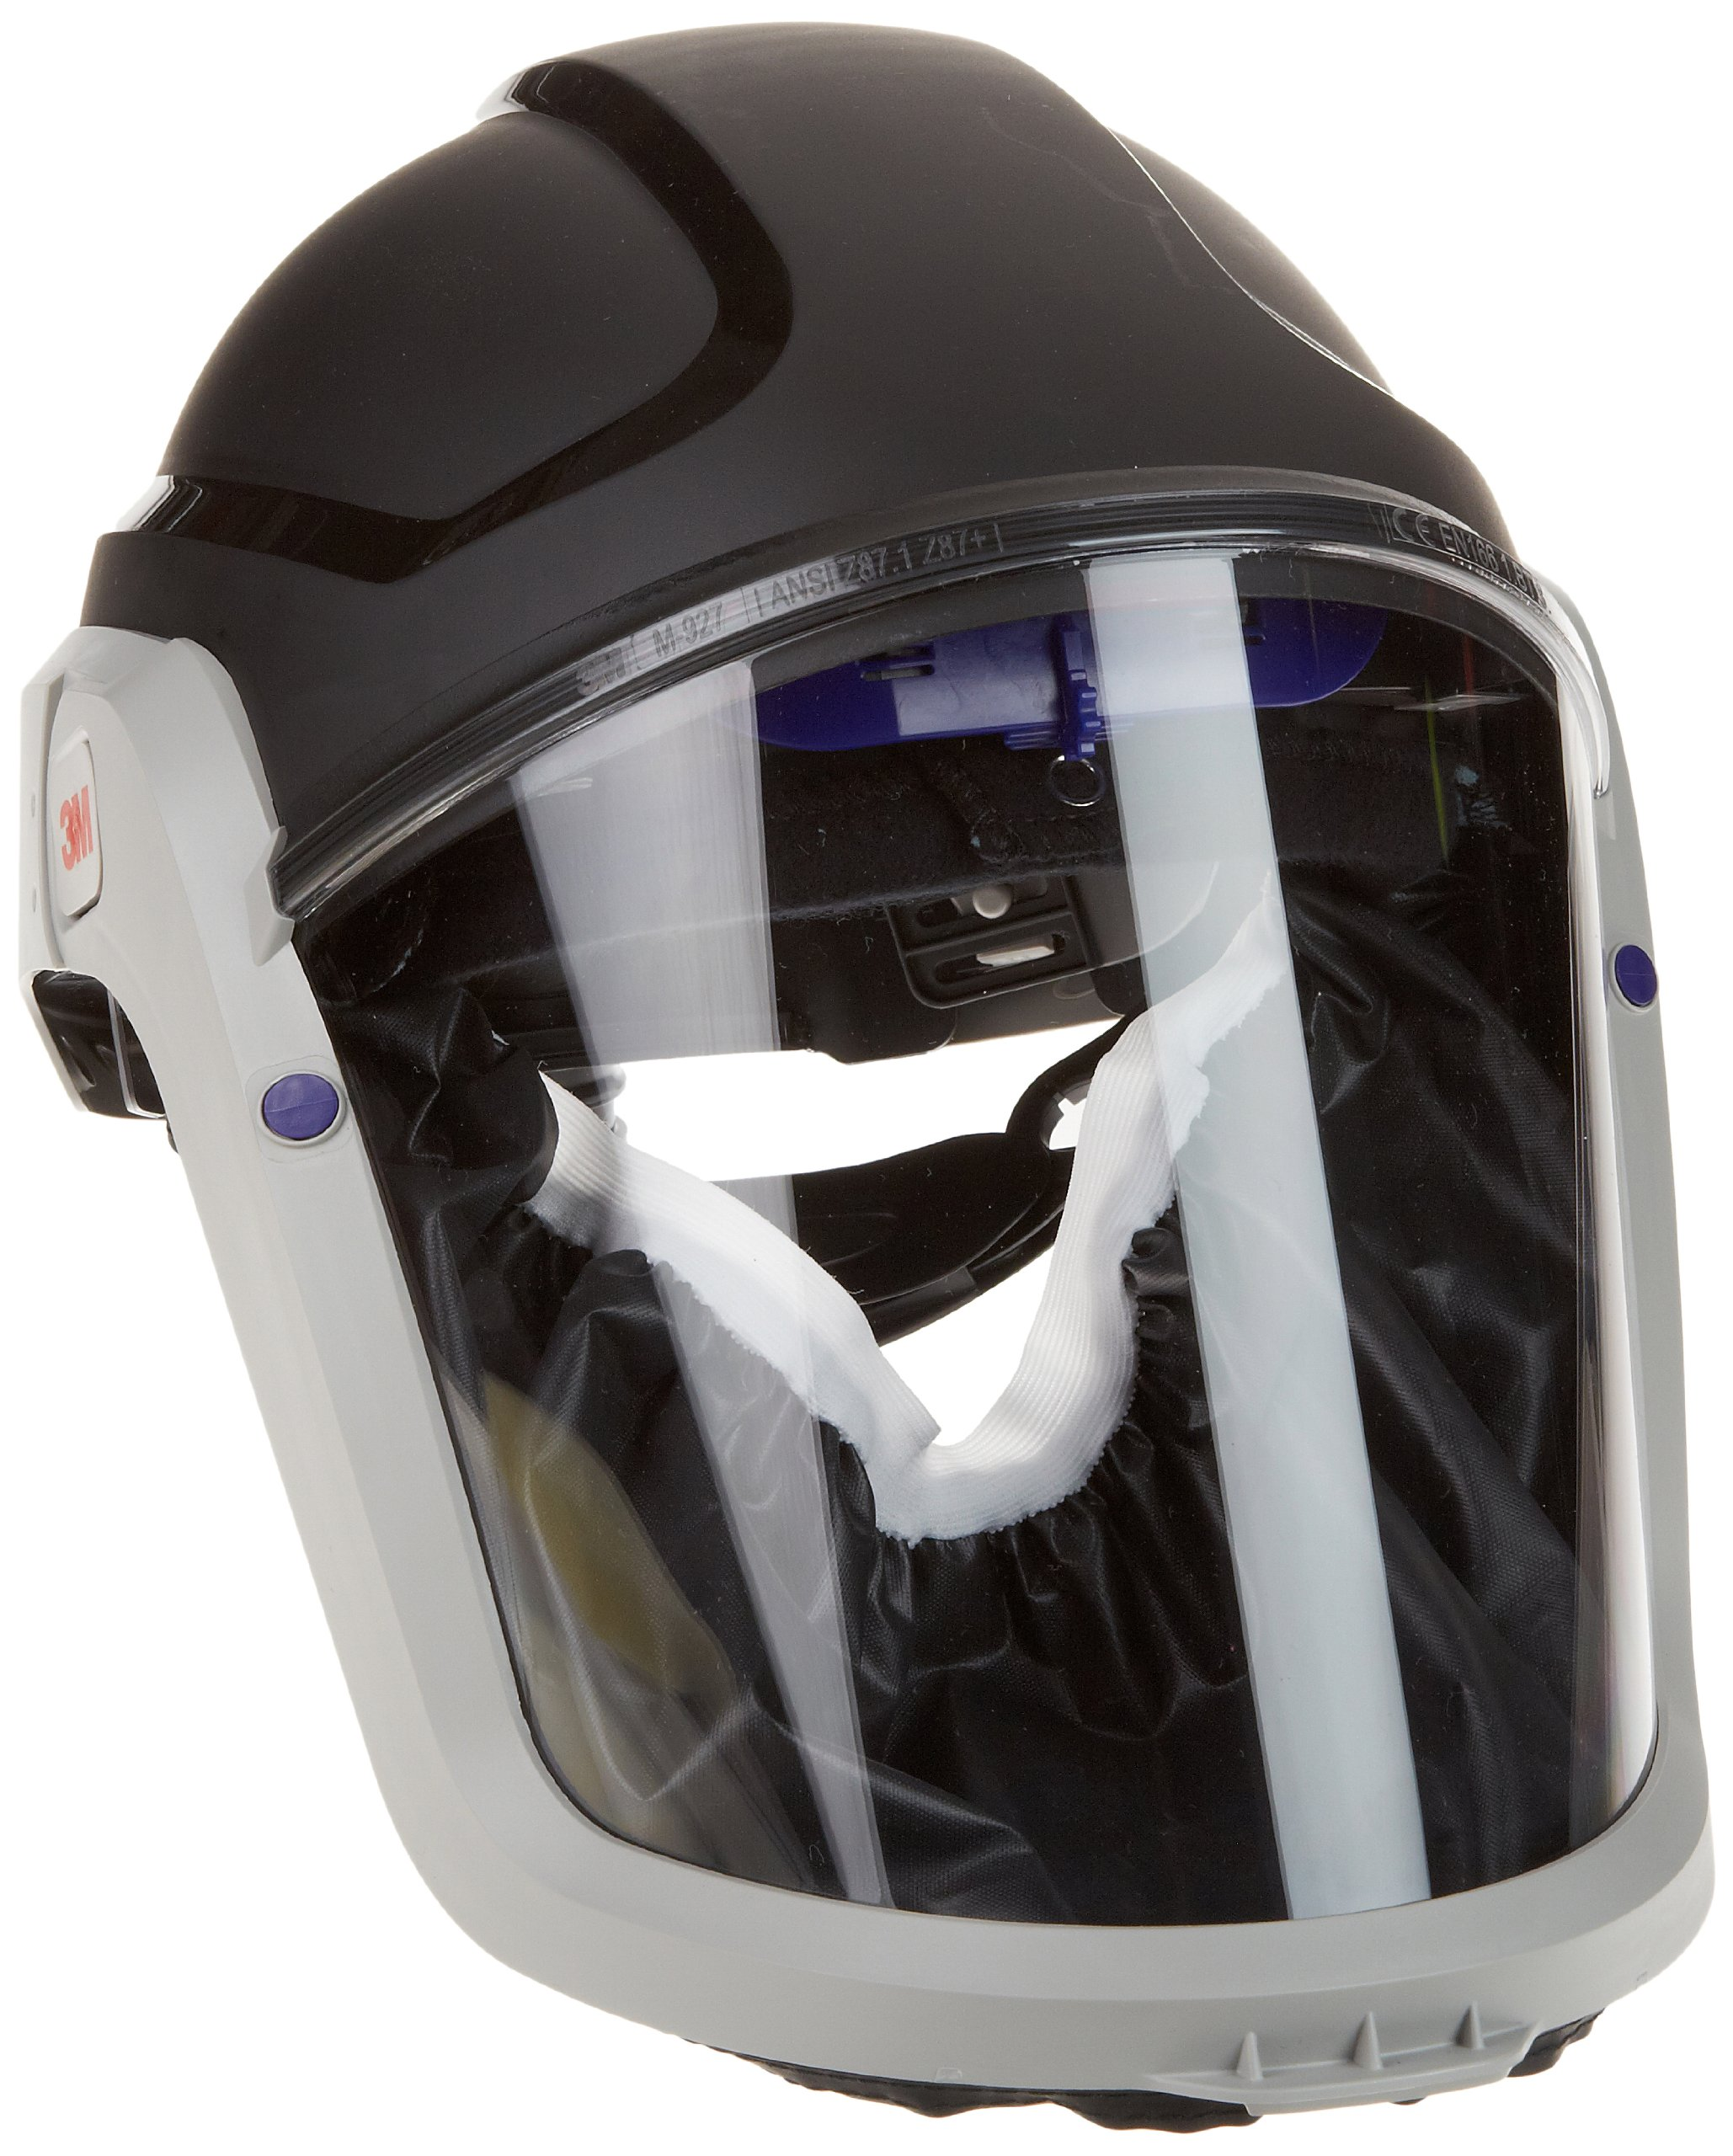 3M M-300 Series Versaflo Respiratory Hardhat Assembly M-307, with Premium Visor and Faceseal by 3M Personal Protective Equipment (Image #1)